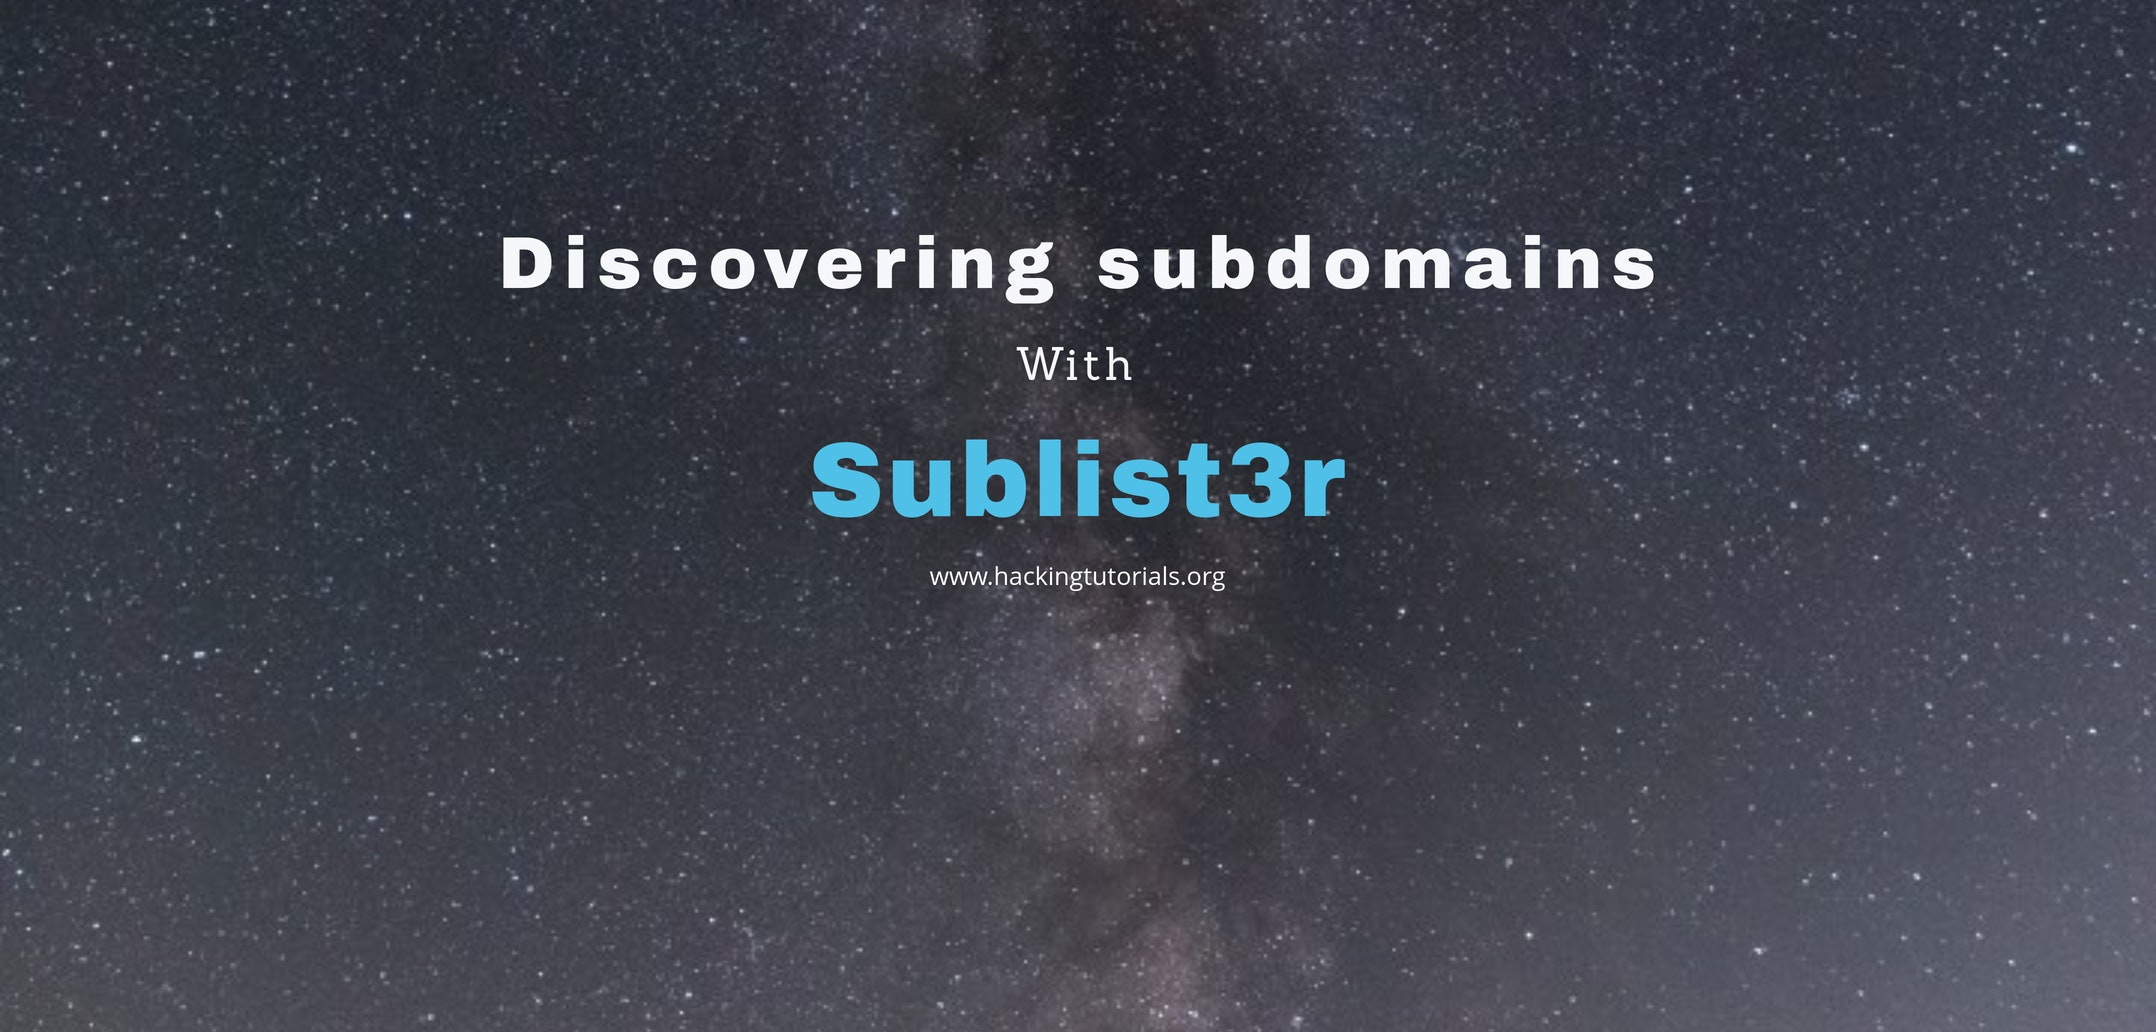 Discovering subdomains with Sublist3r - Hacking Tutorials